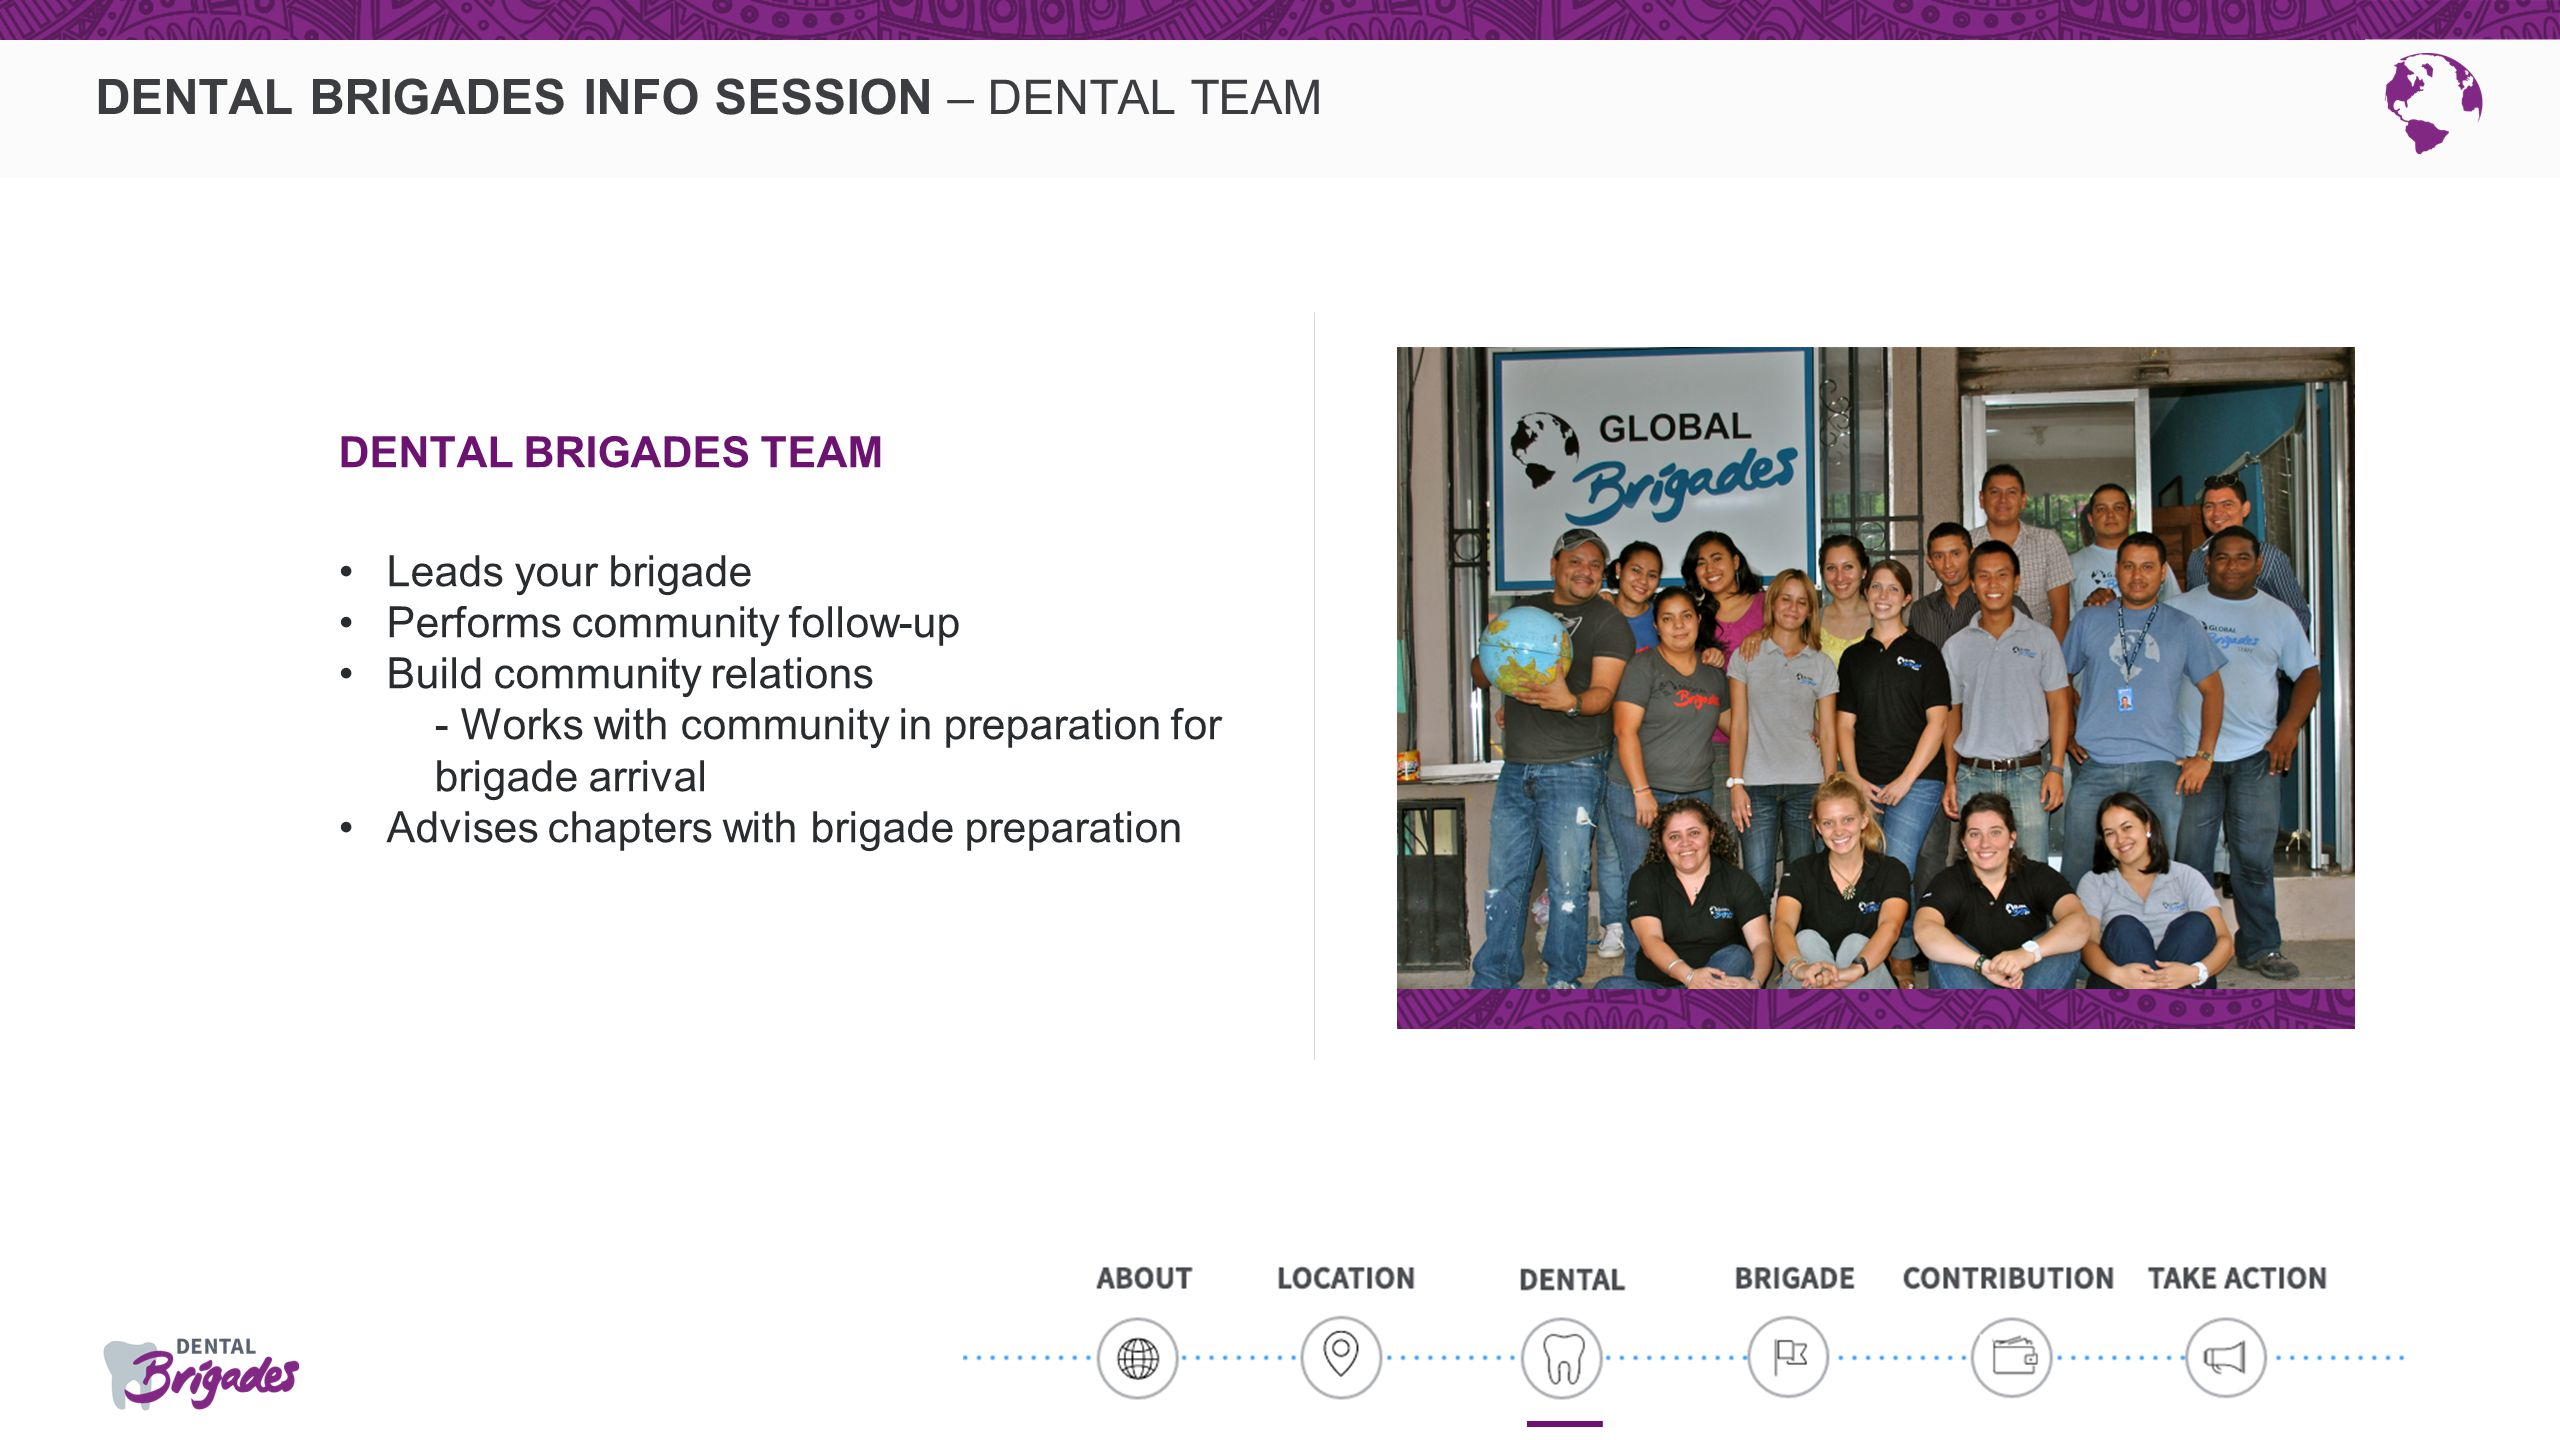 DENTAL BRIGADES INFO SESSION – DENTAL TEAM DENTAL BRIGADES TEAM Leads your brigade Performs community follow-up Build community relations - Works with